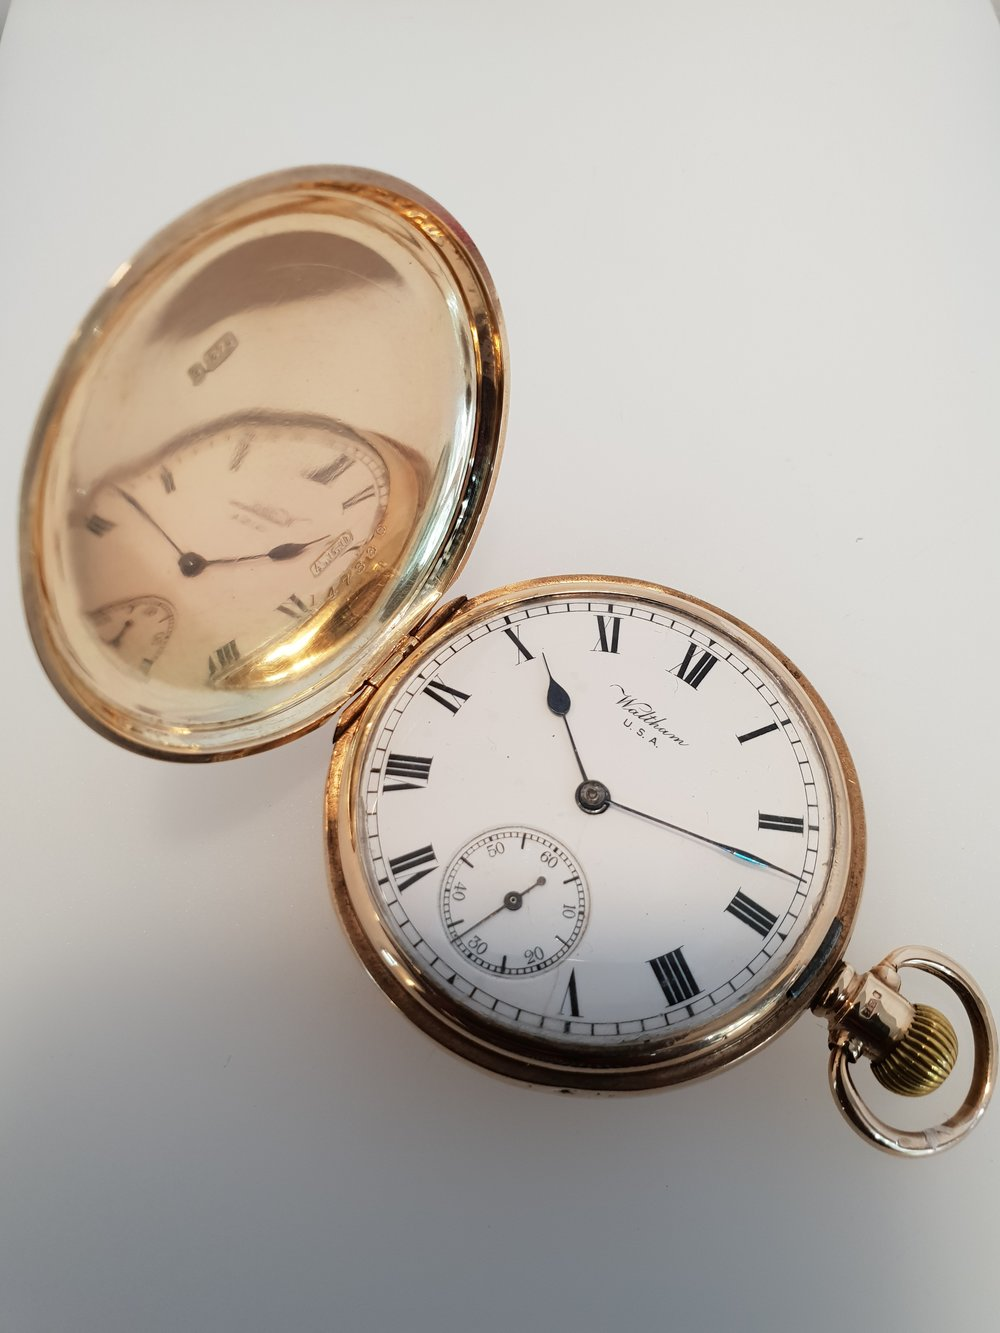 9ct Gold Waltham Hunter Pocket Watch, Circa 1918.  Stock Code: Y754  Our Price: £1200